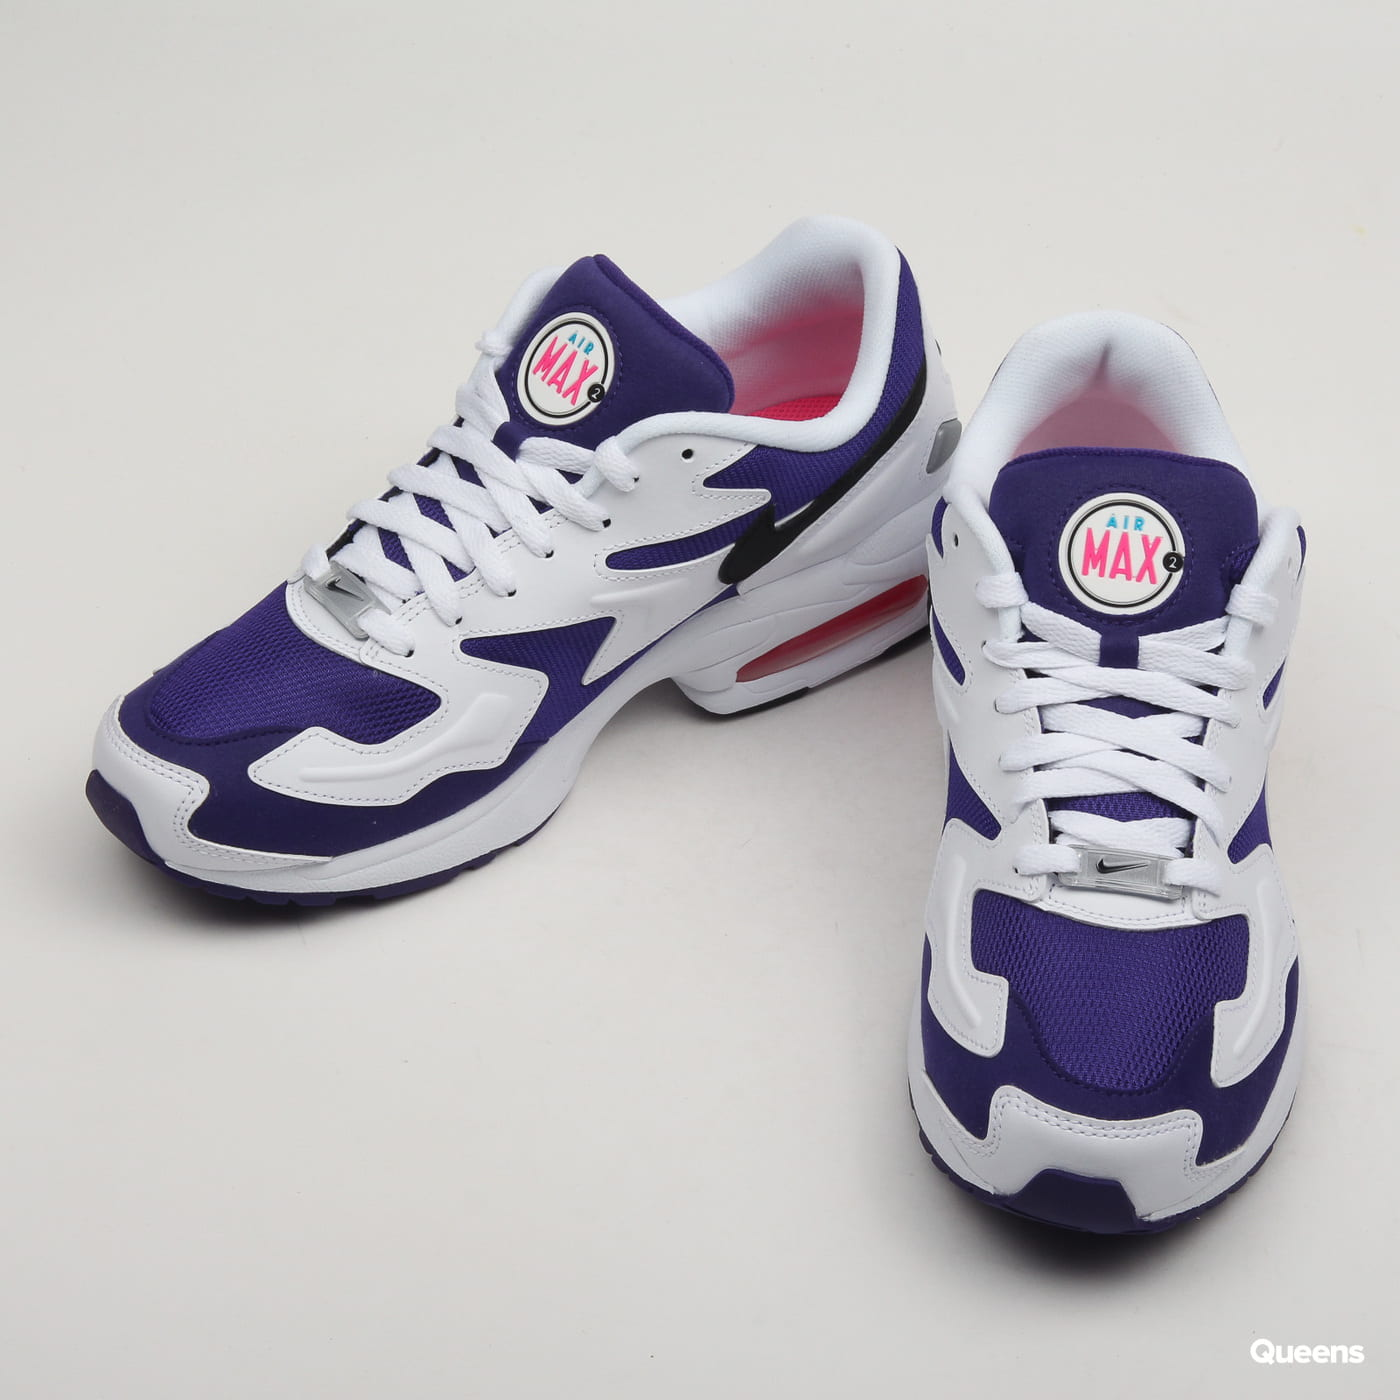 Nike Air Max2 Light white / black - court purple